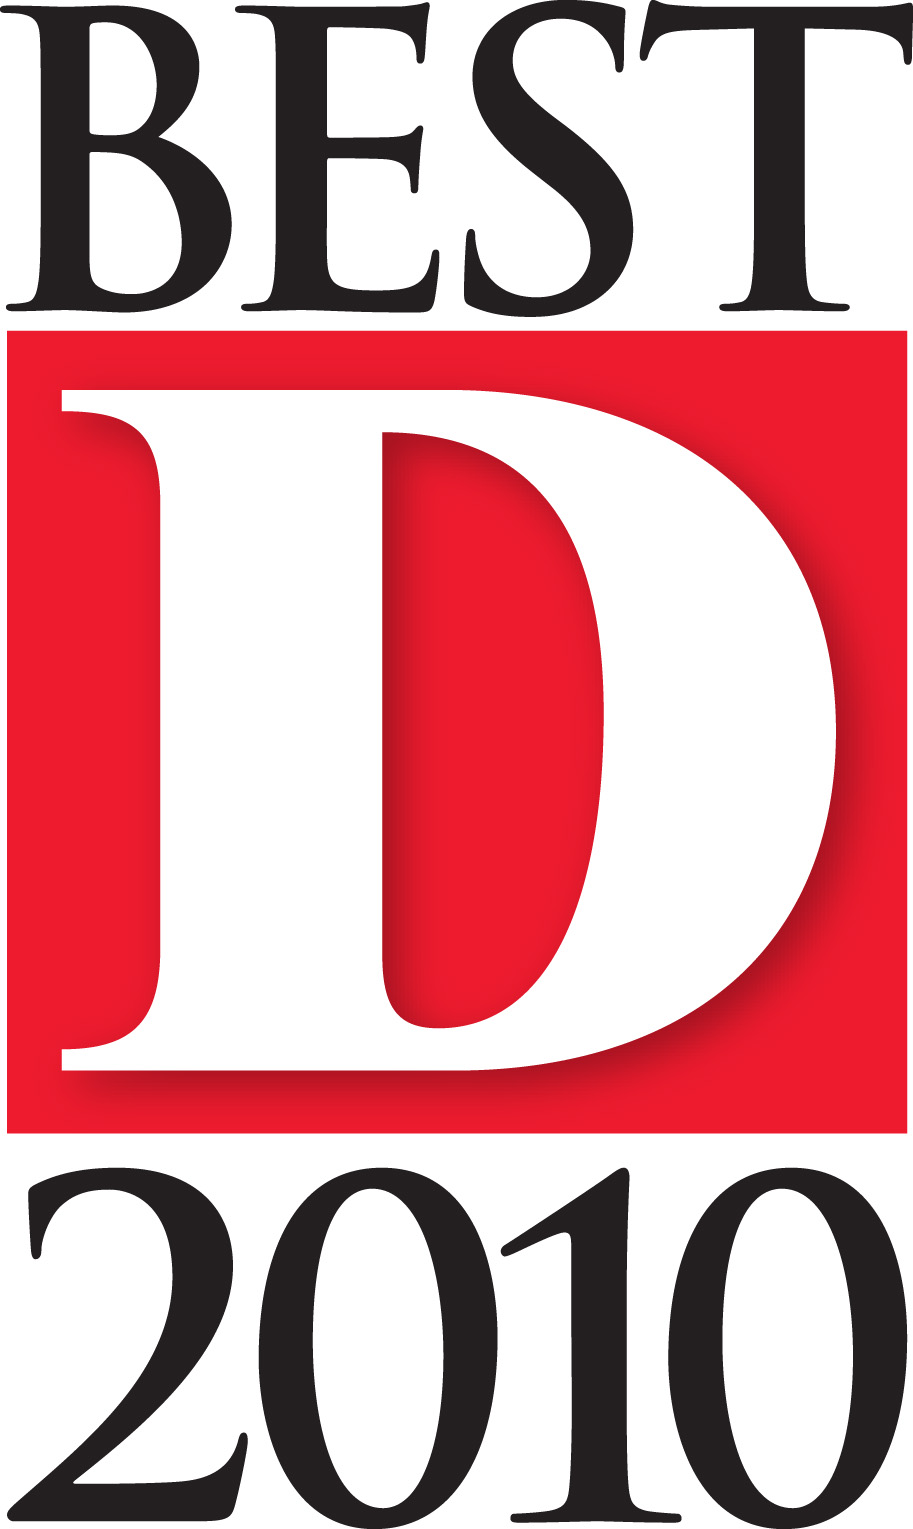 Every year d magazine conducts a survey to see which physicians within the dallas medical community most distinguish